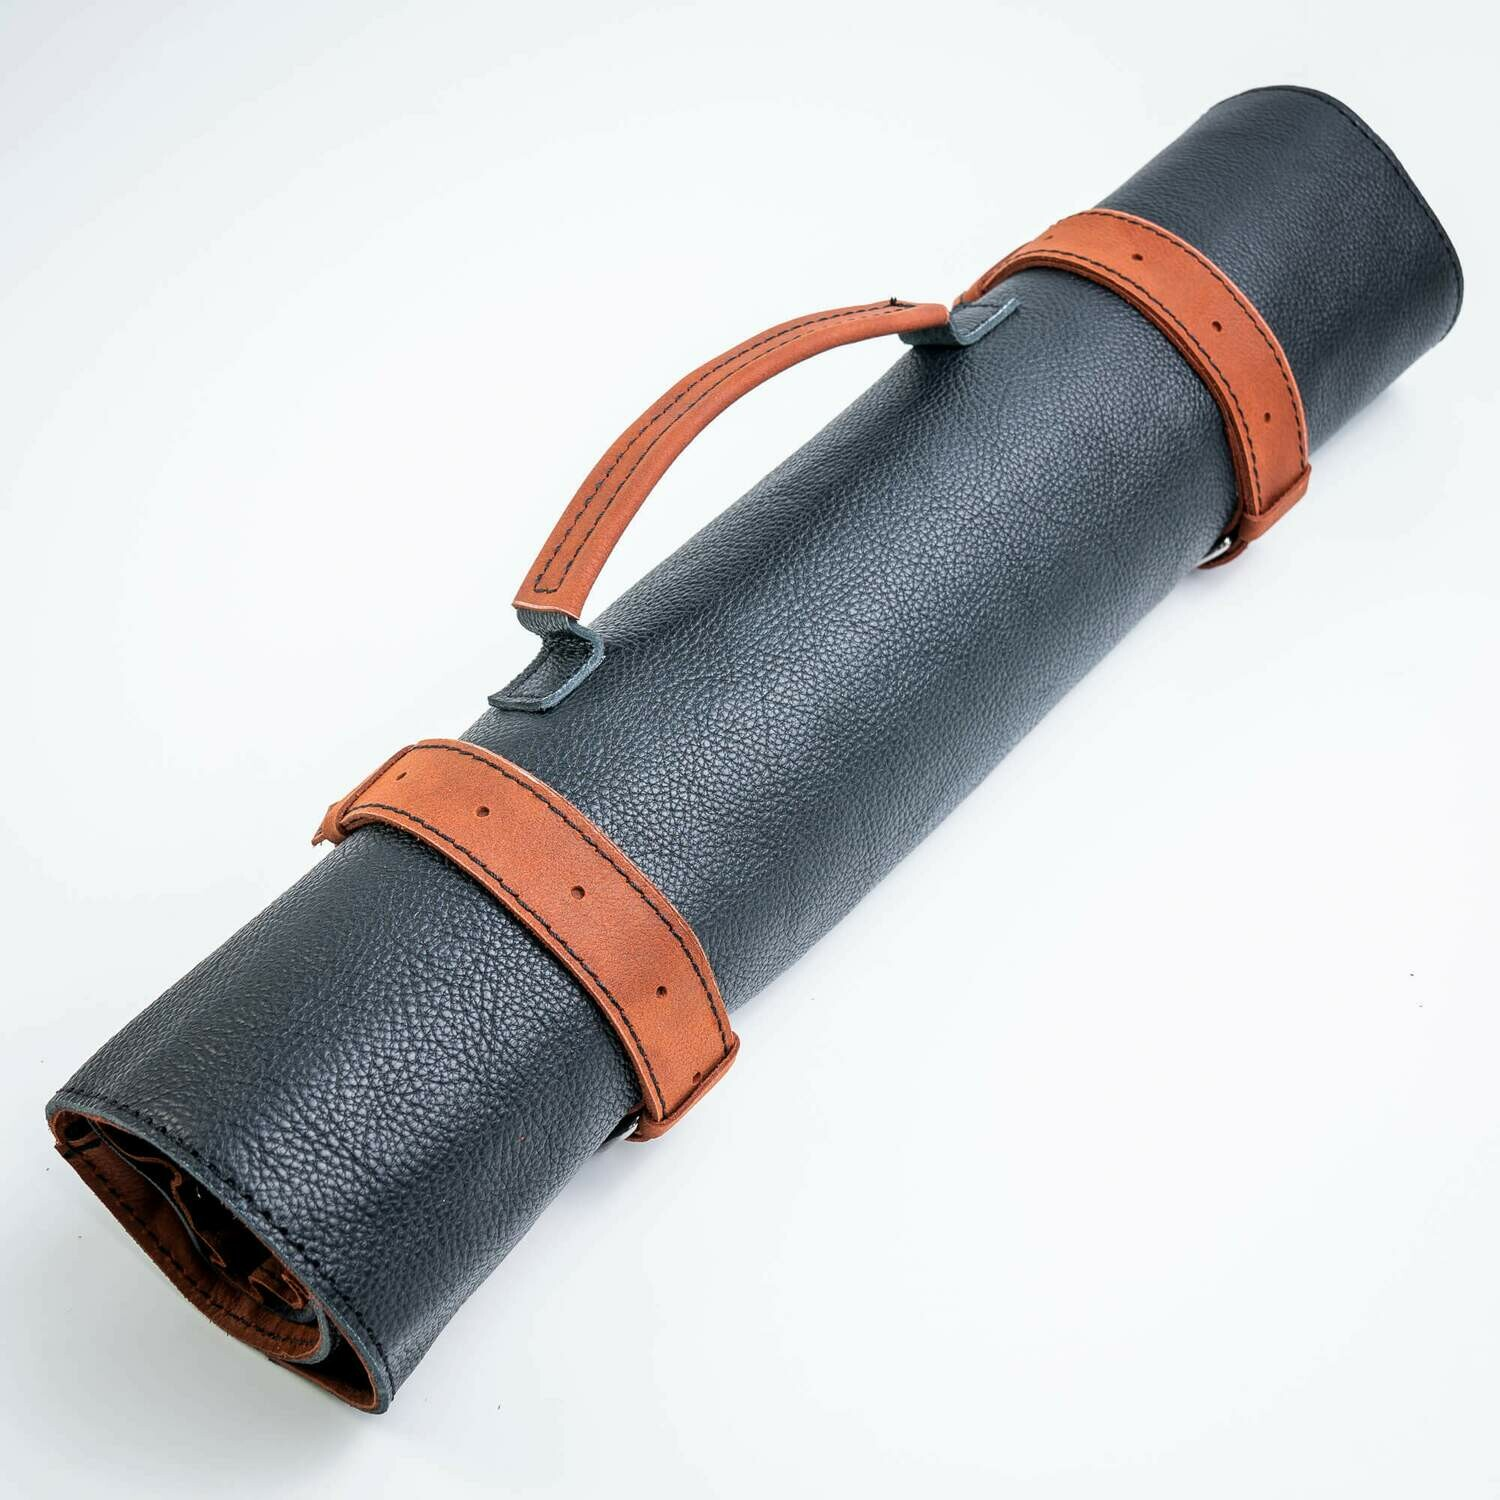 ROLL-LR500 - LEATHER BAG SCREW FOR KNIVES